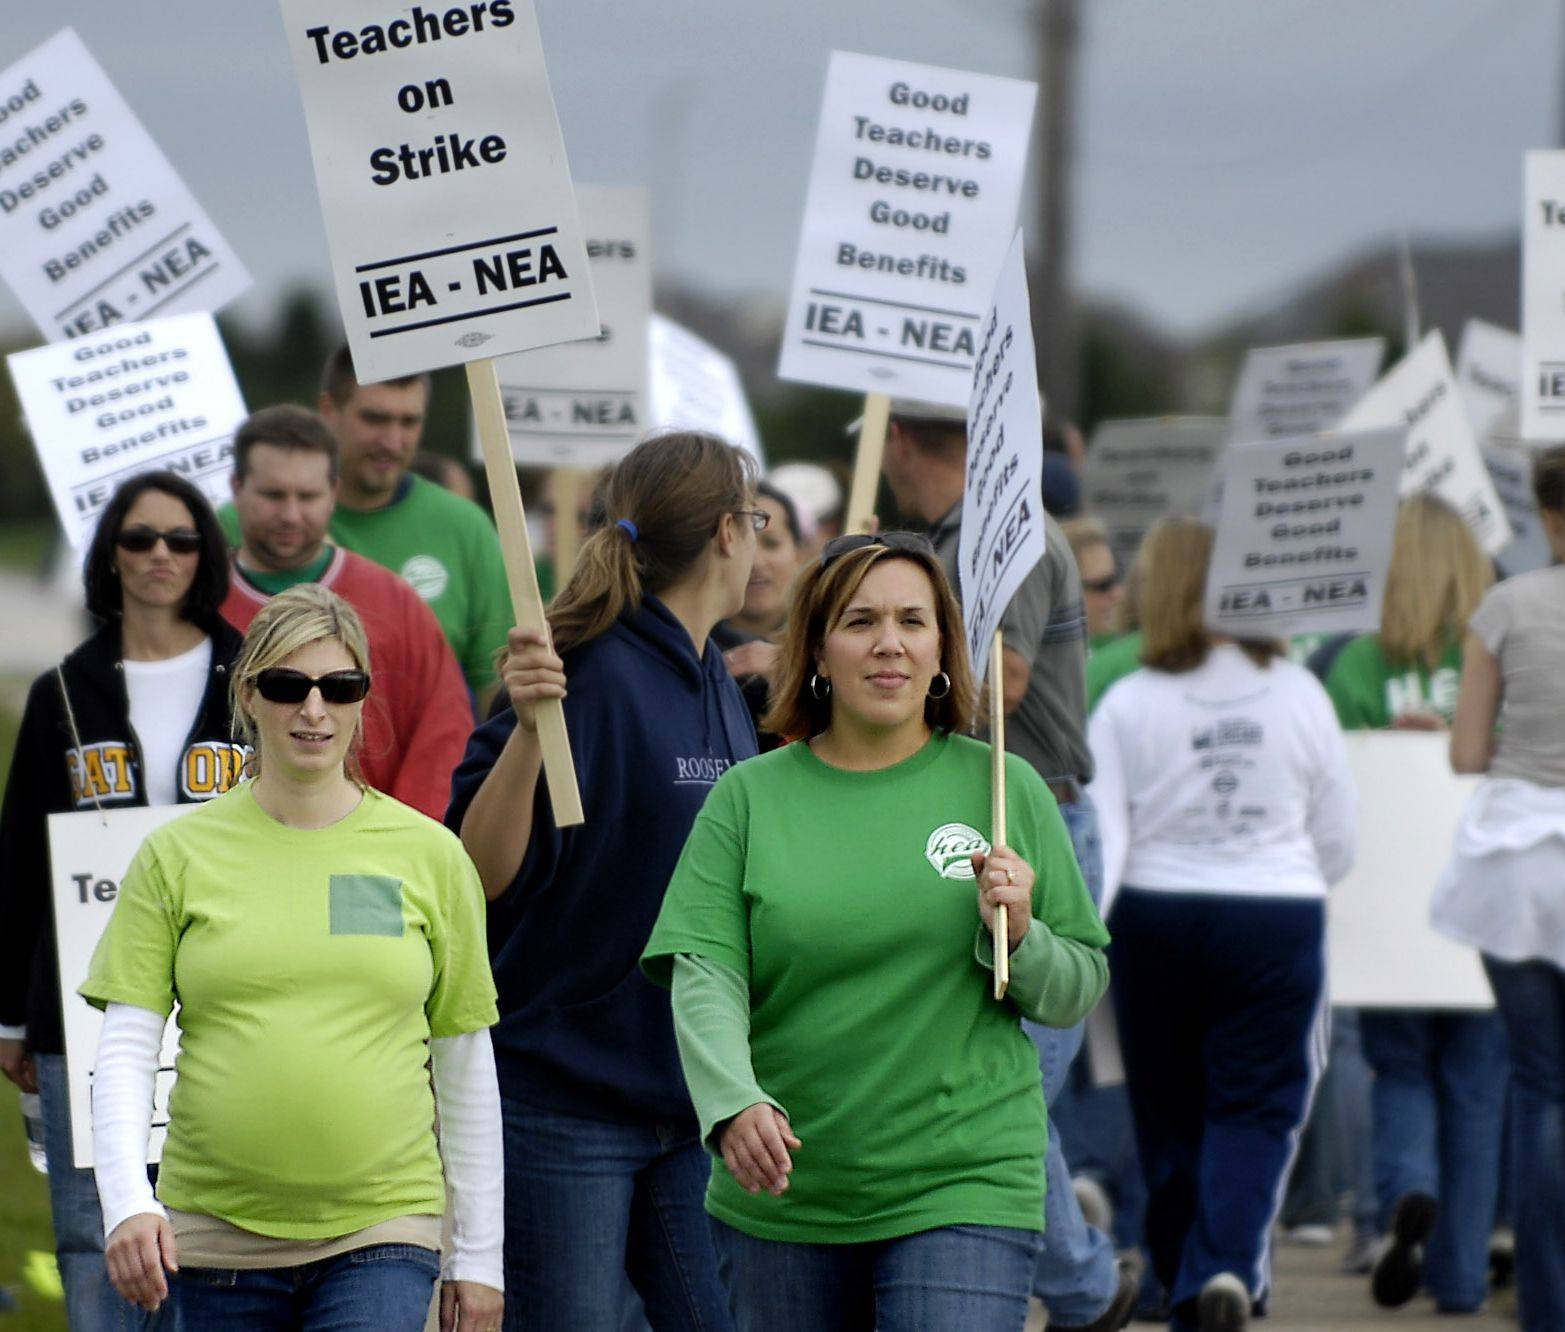 Teachers in Huntley Unit District 158 struck for three days in 2008 and have threatened to do so again.